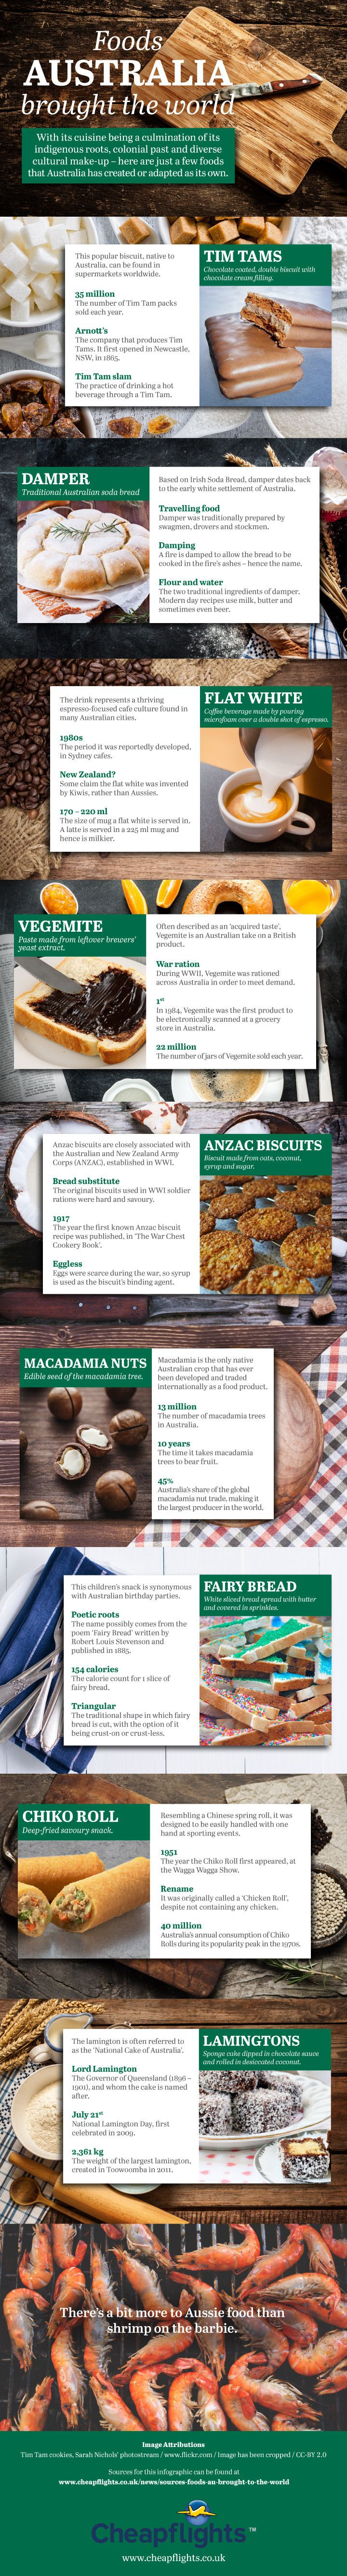 Foods that Australia brought the world. Need to try an authentic Lamington.